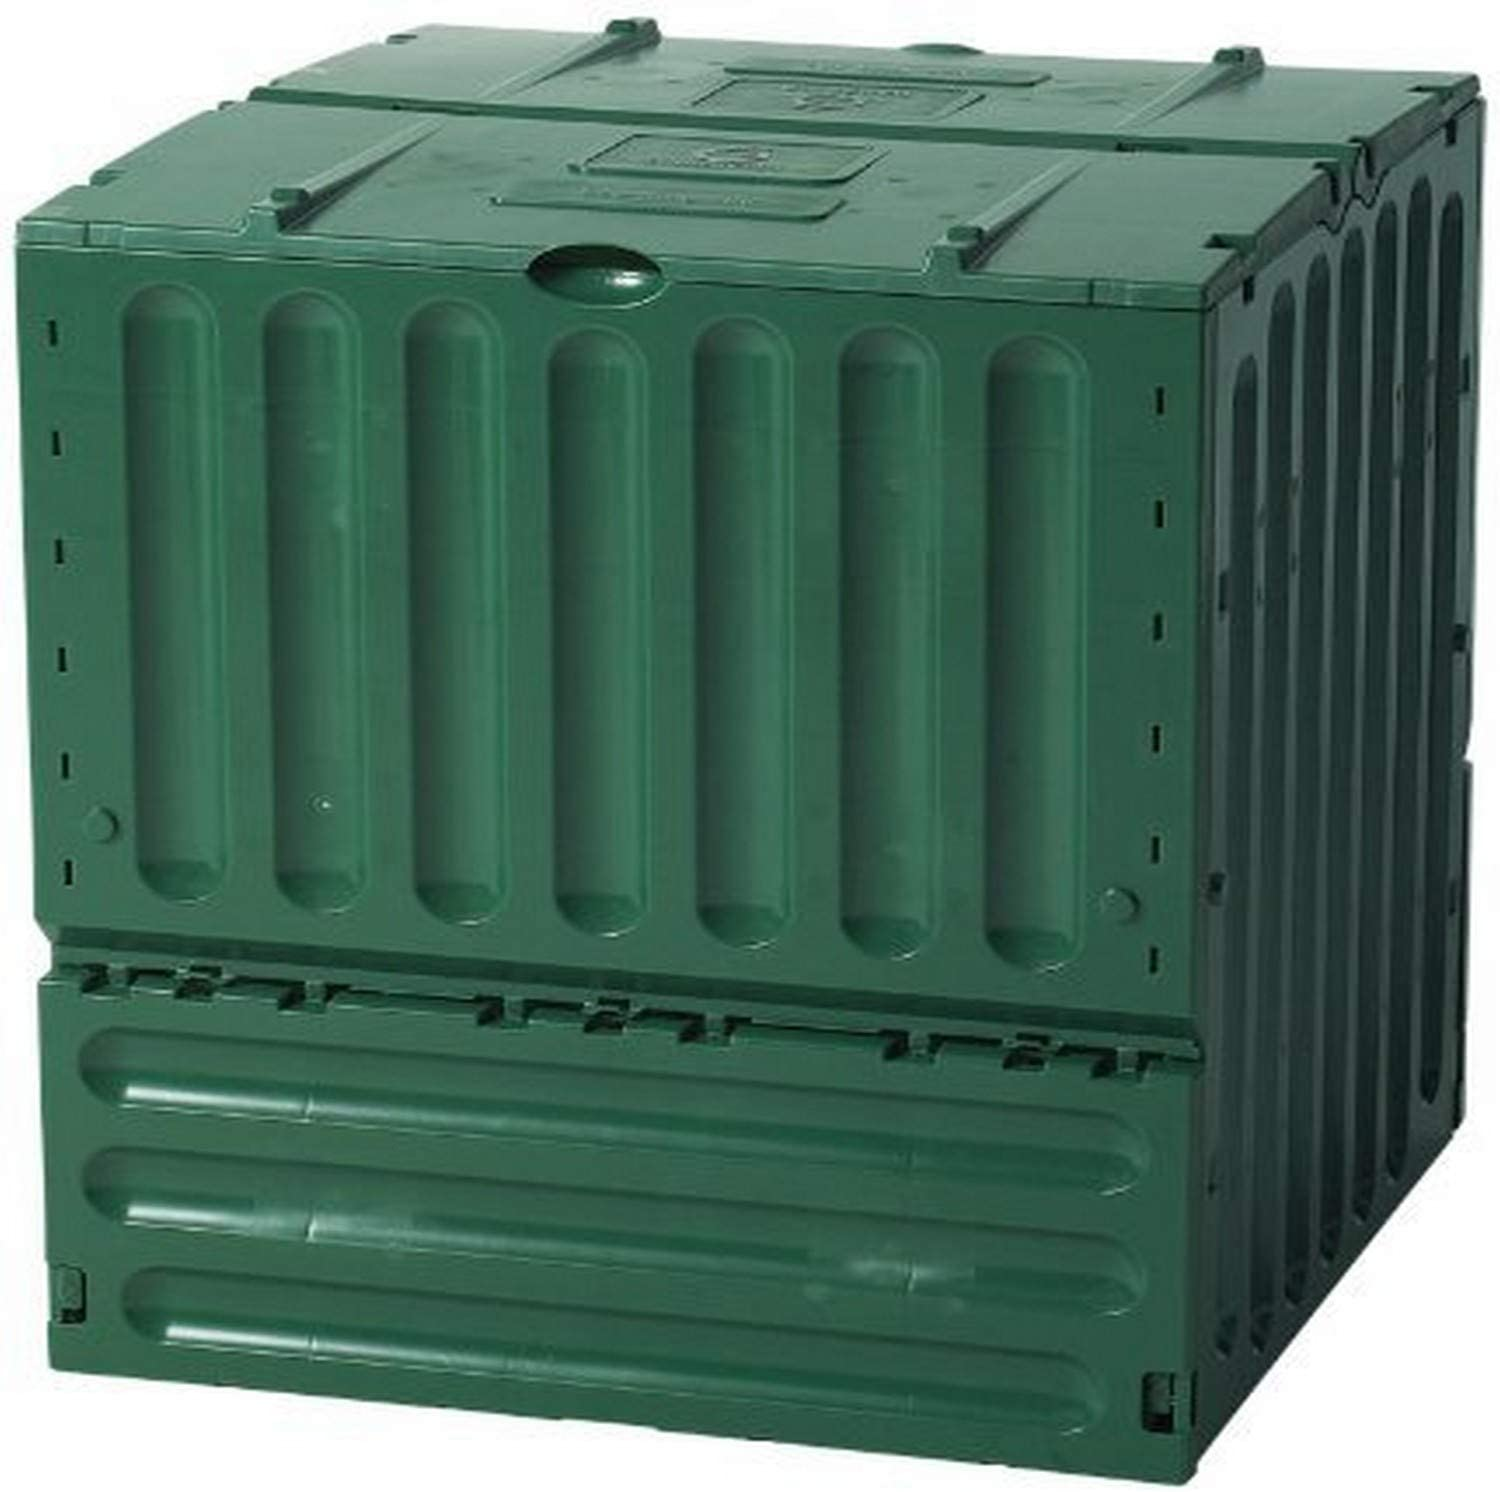 Tierra Garden 627001 Large Eco King Polypropylene 158-Gallon Composter, Green